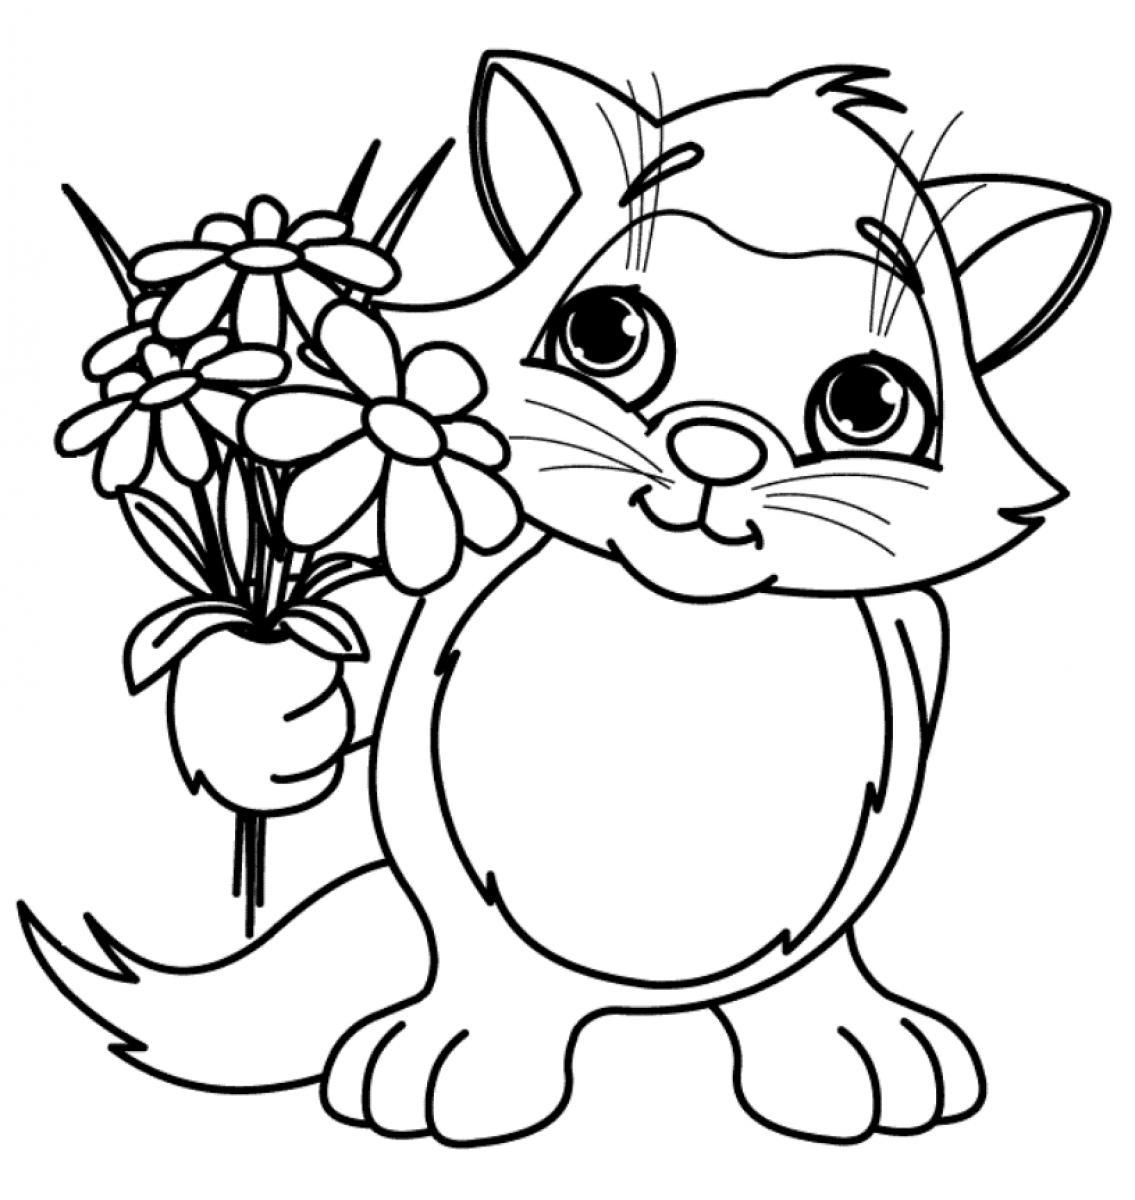 coloring pages of spring flowers - spring flower coloring pages to download and print for free